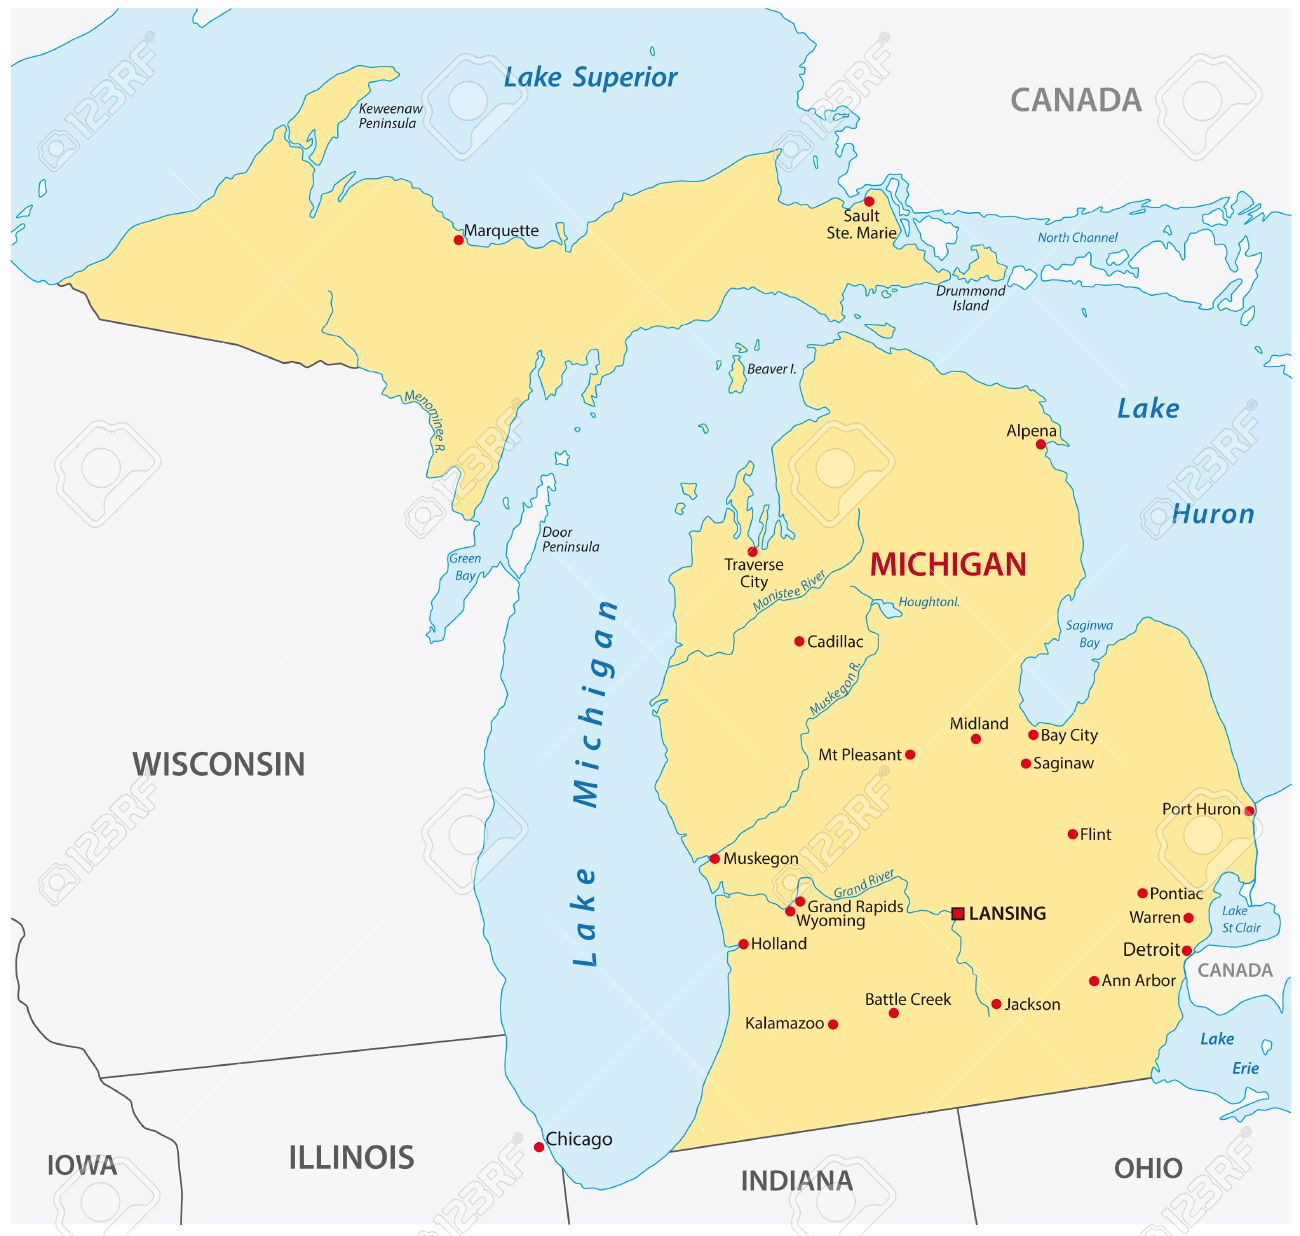 Simple Michigan State Map Royalty Free Cliparts Vectors And - Mi state map